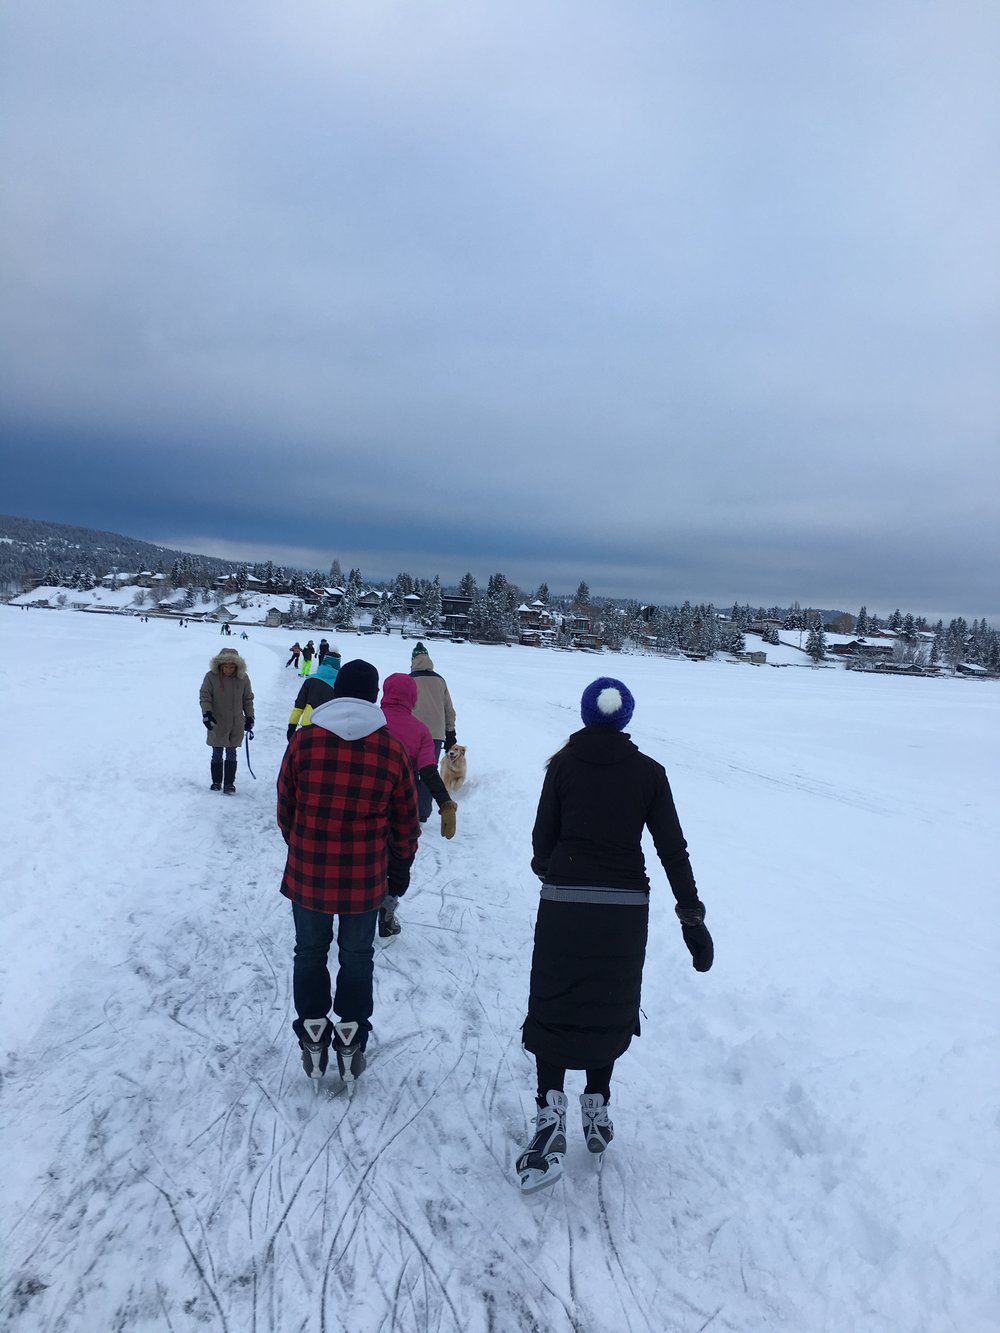 Fun Fact: Lake Windermere has the longest skating path in the world!